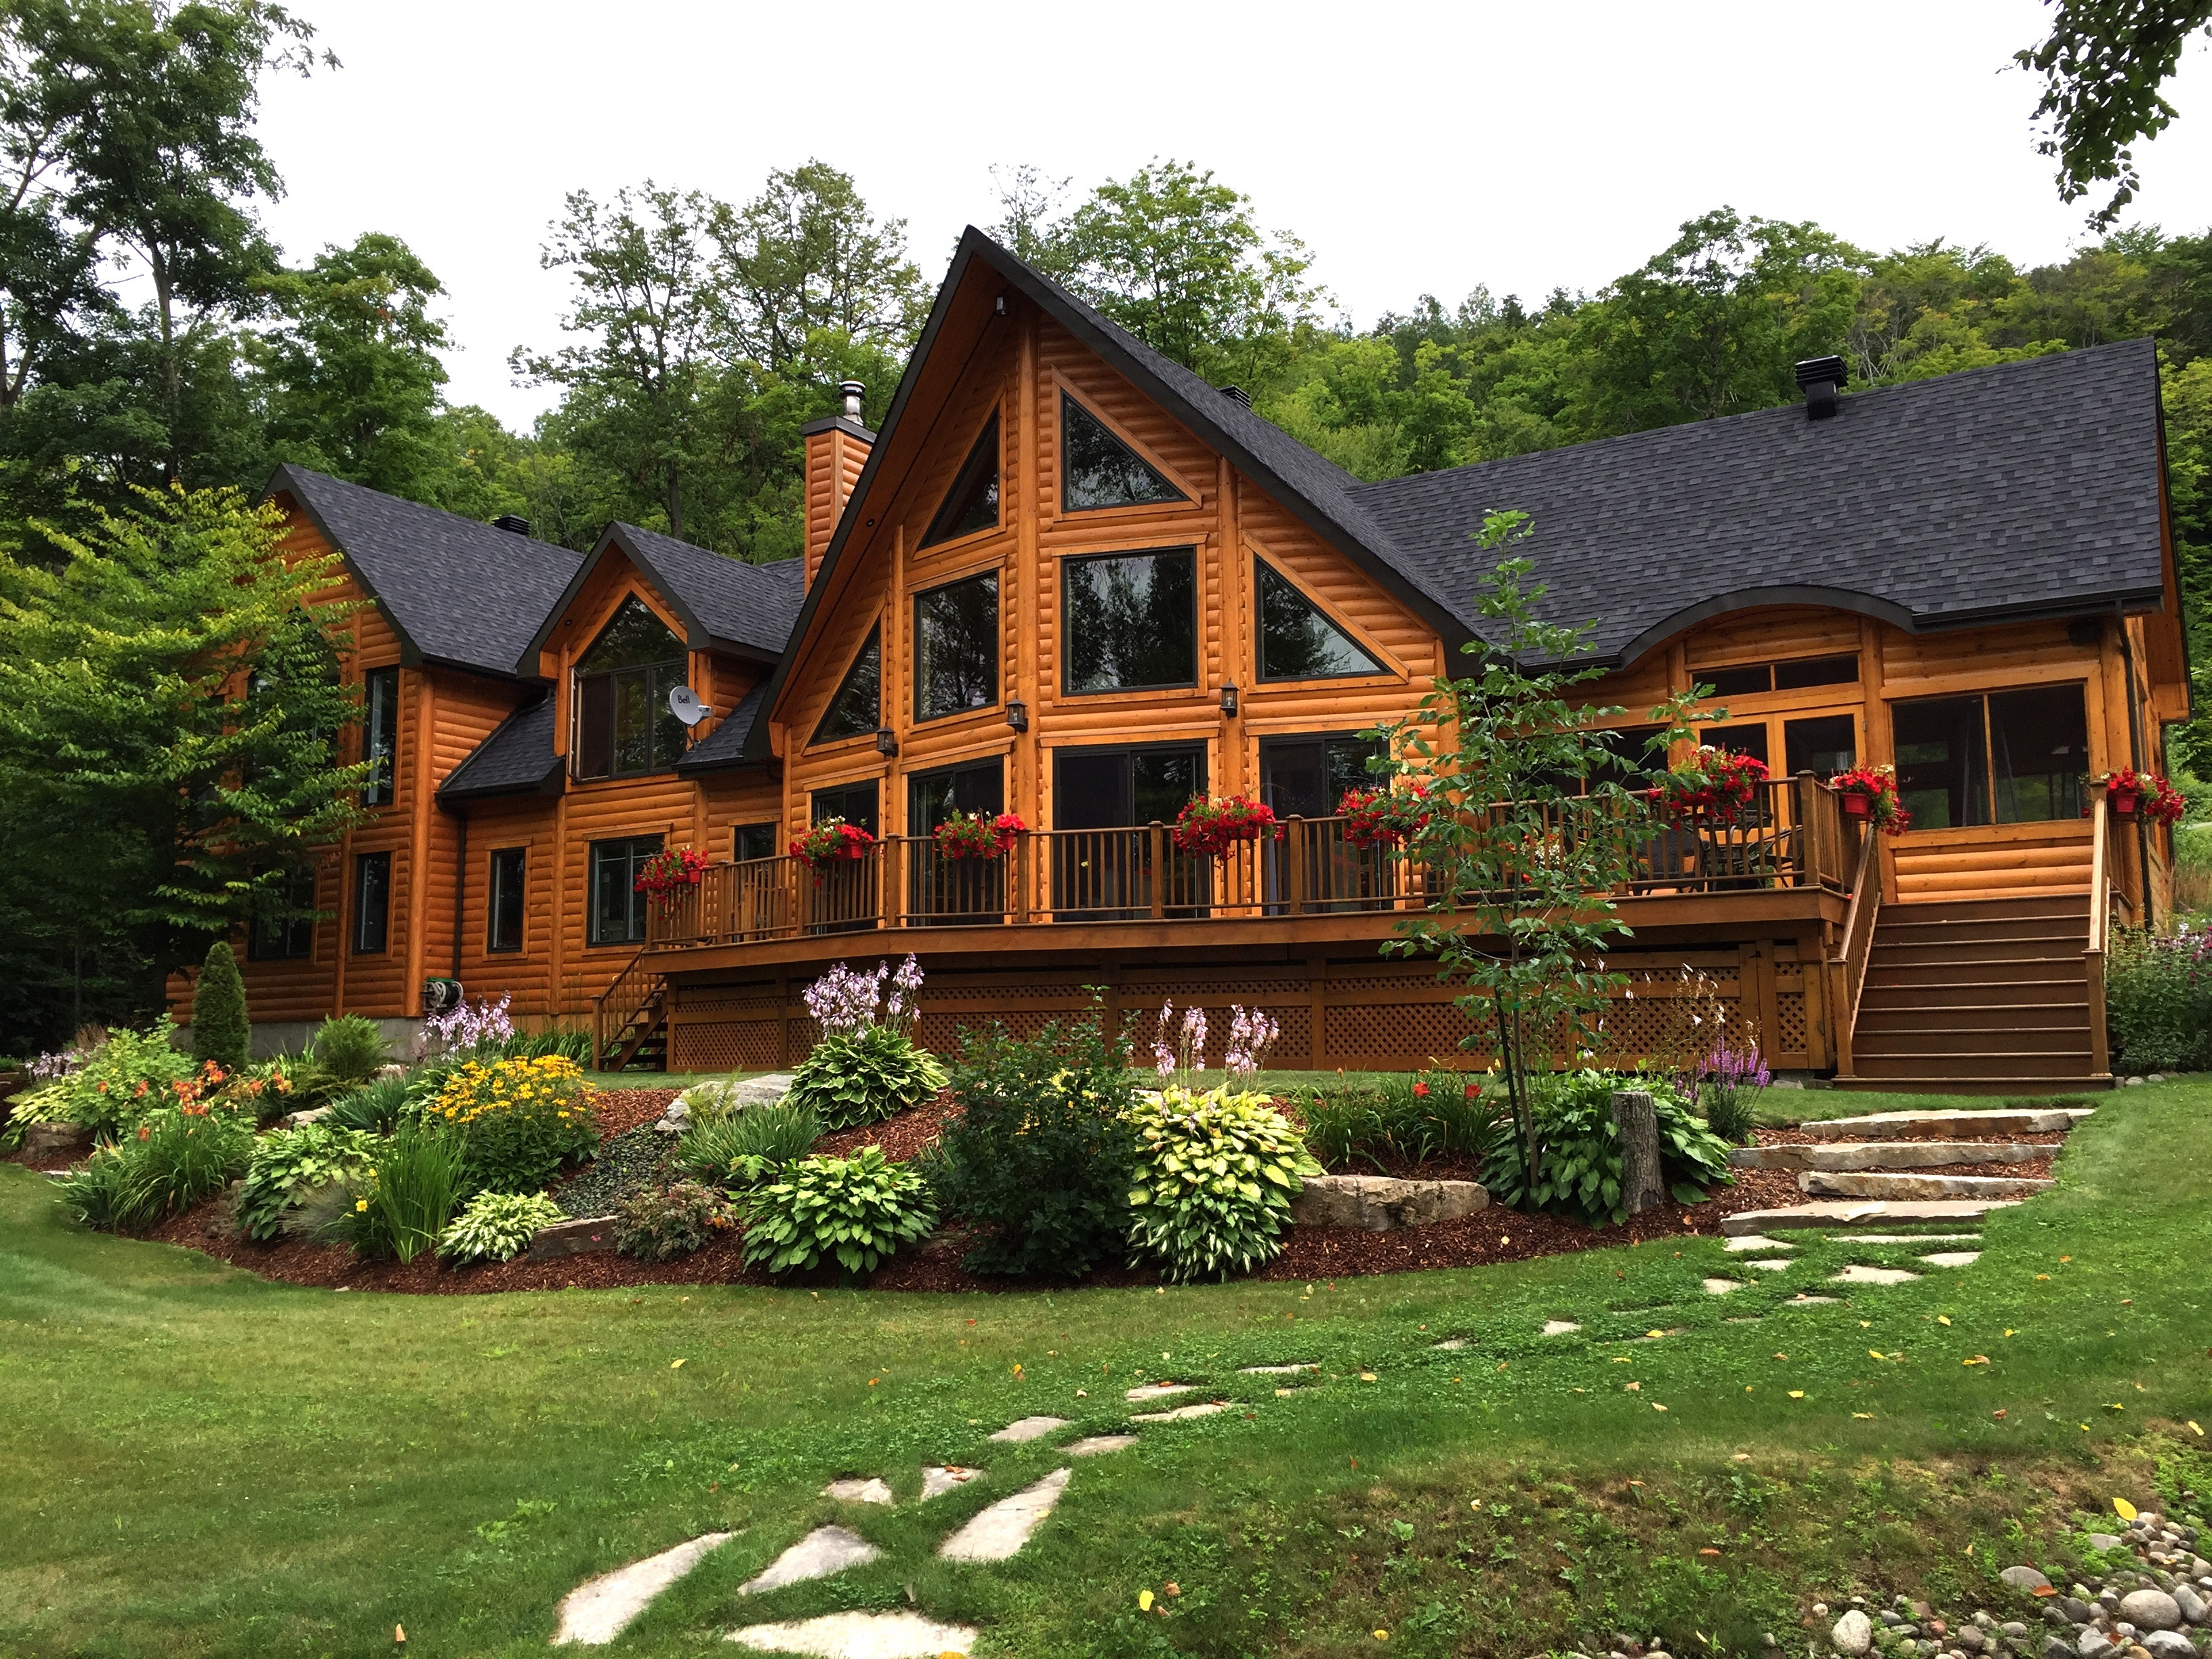 The Timber Block Home Building Process